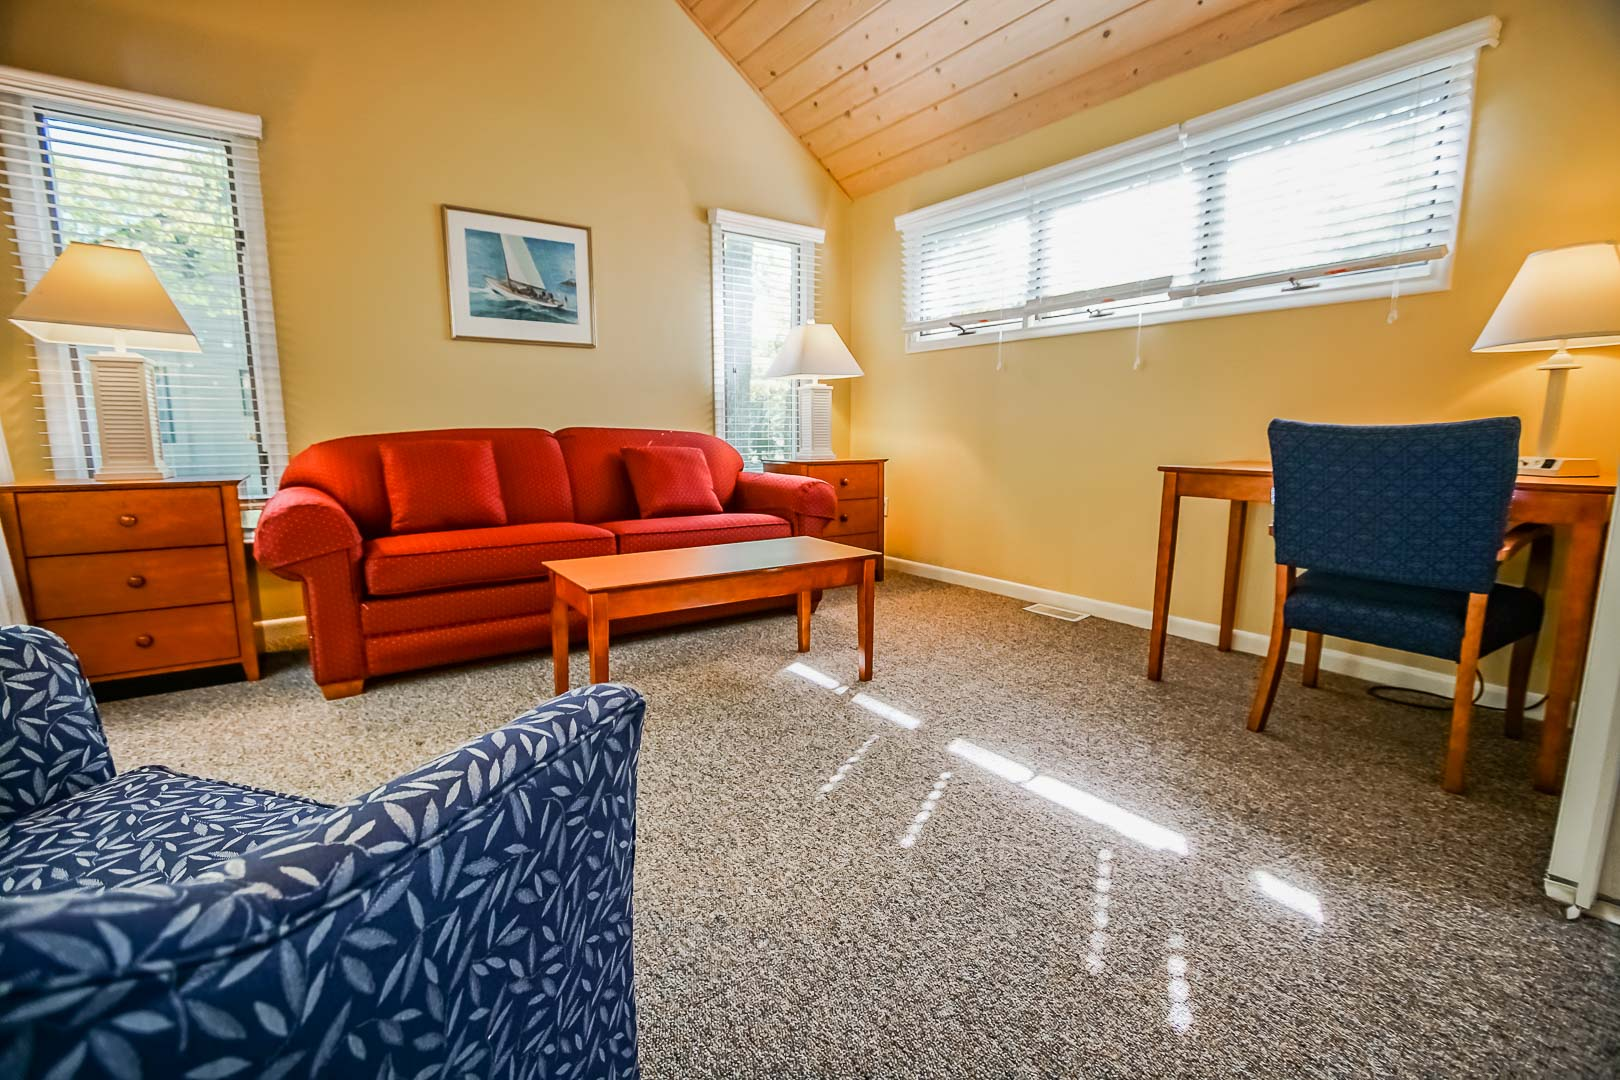 A traditional living room area and a personal size desk at VRI's Cape Cod Holiday Estates in Massachusetts.